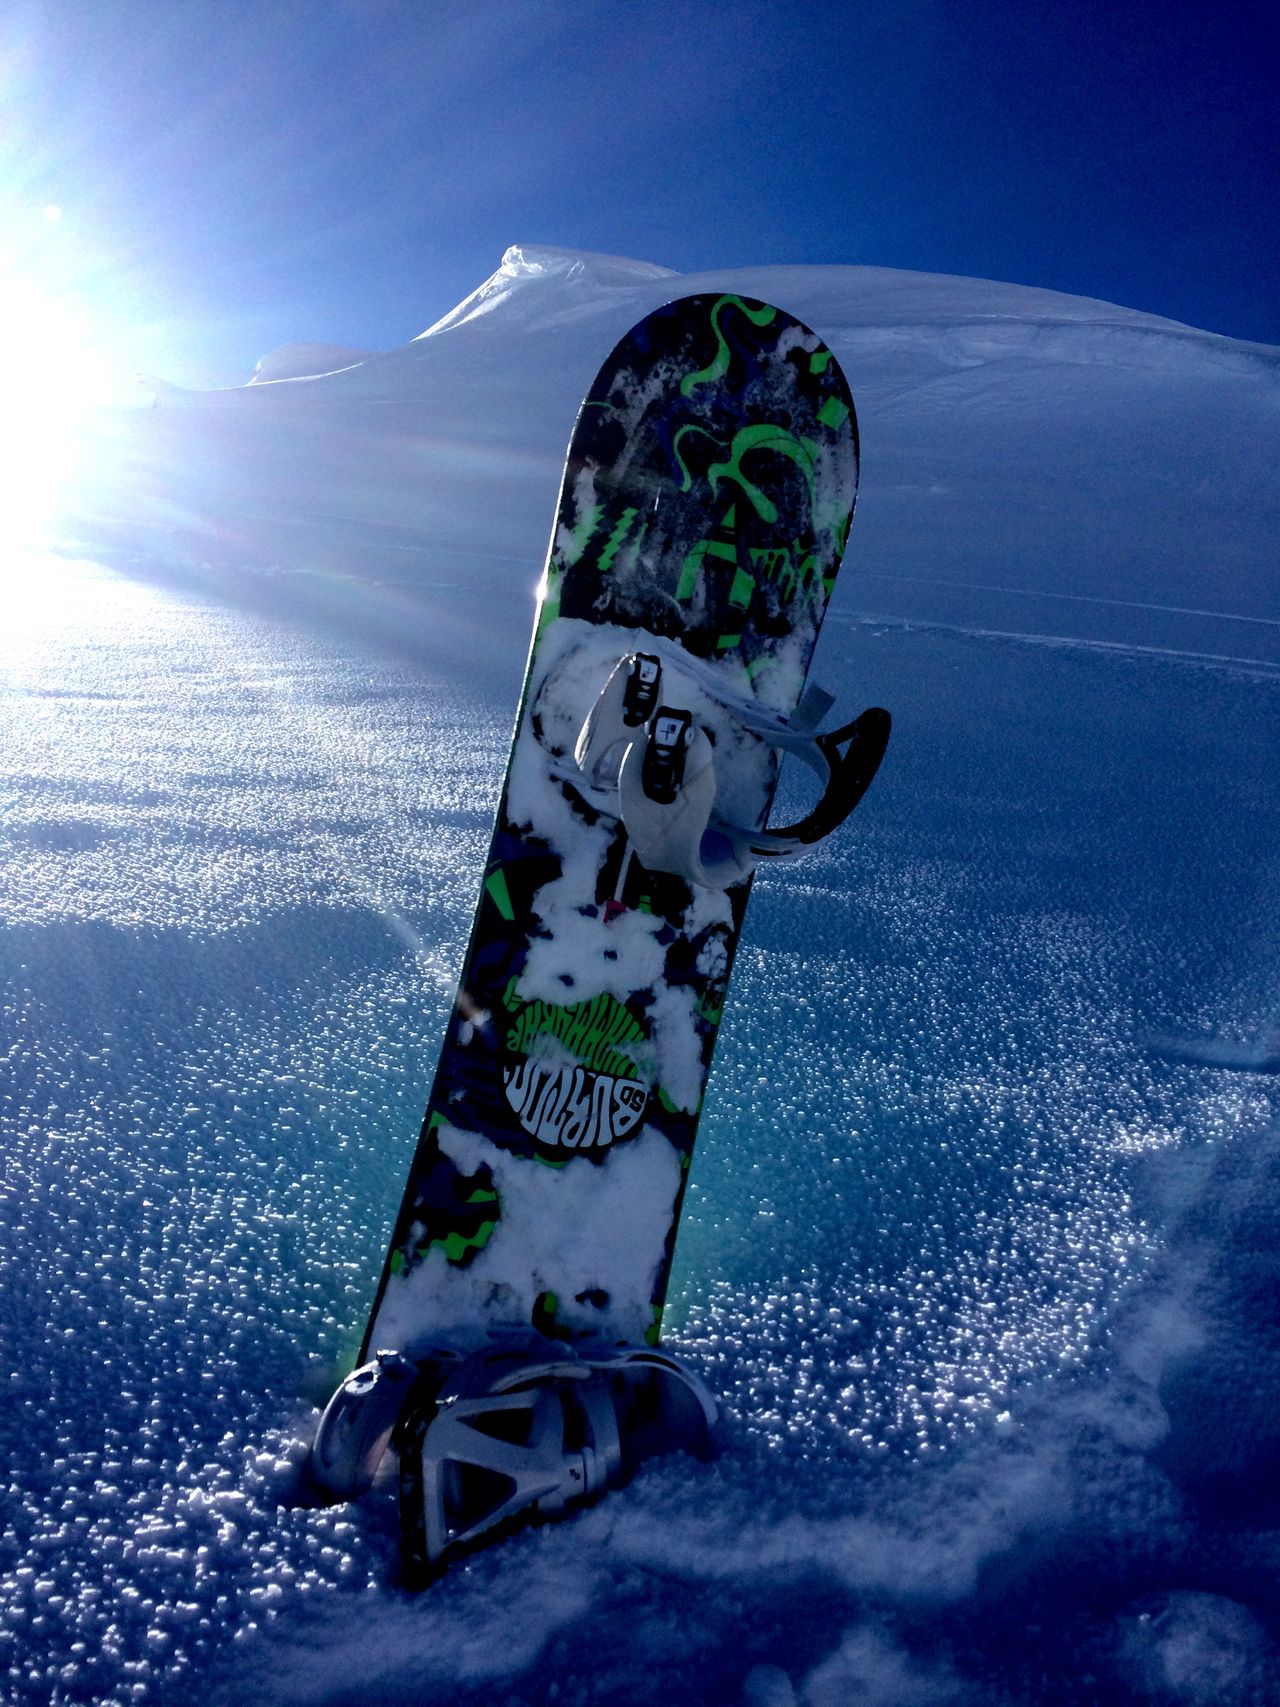 A Snowboard standing in the Snow on the Mountain with the Light leaking from the side. Sun Snowboarding Meribel Creative Light And Shadow Snow Sports